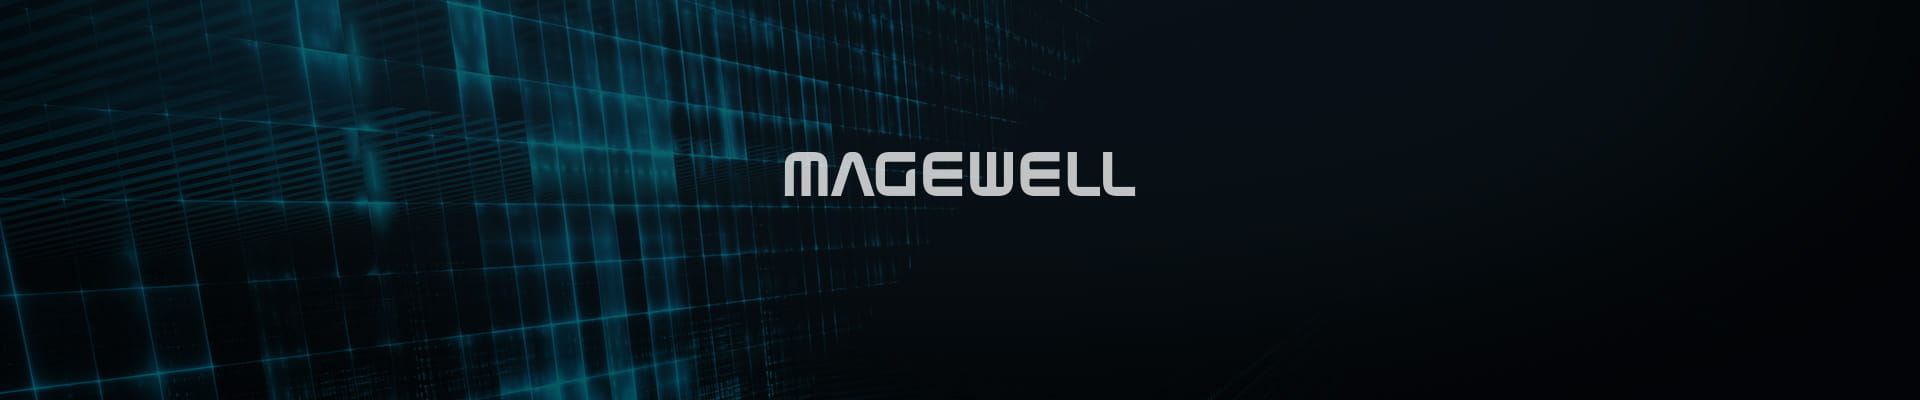 img-magewell-compatible-soft-icon-metus